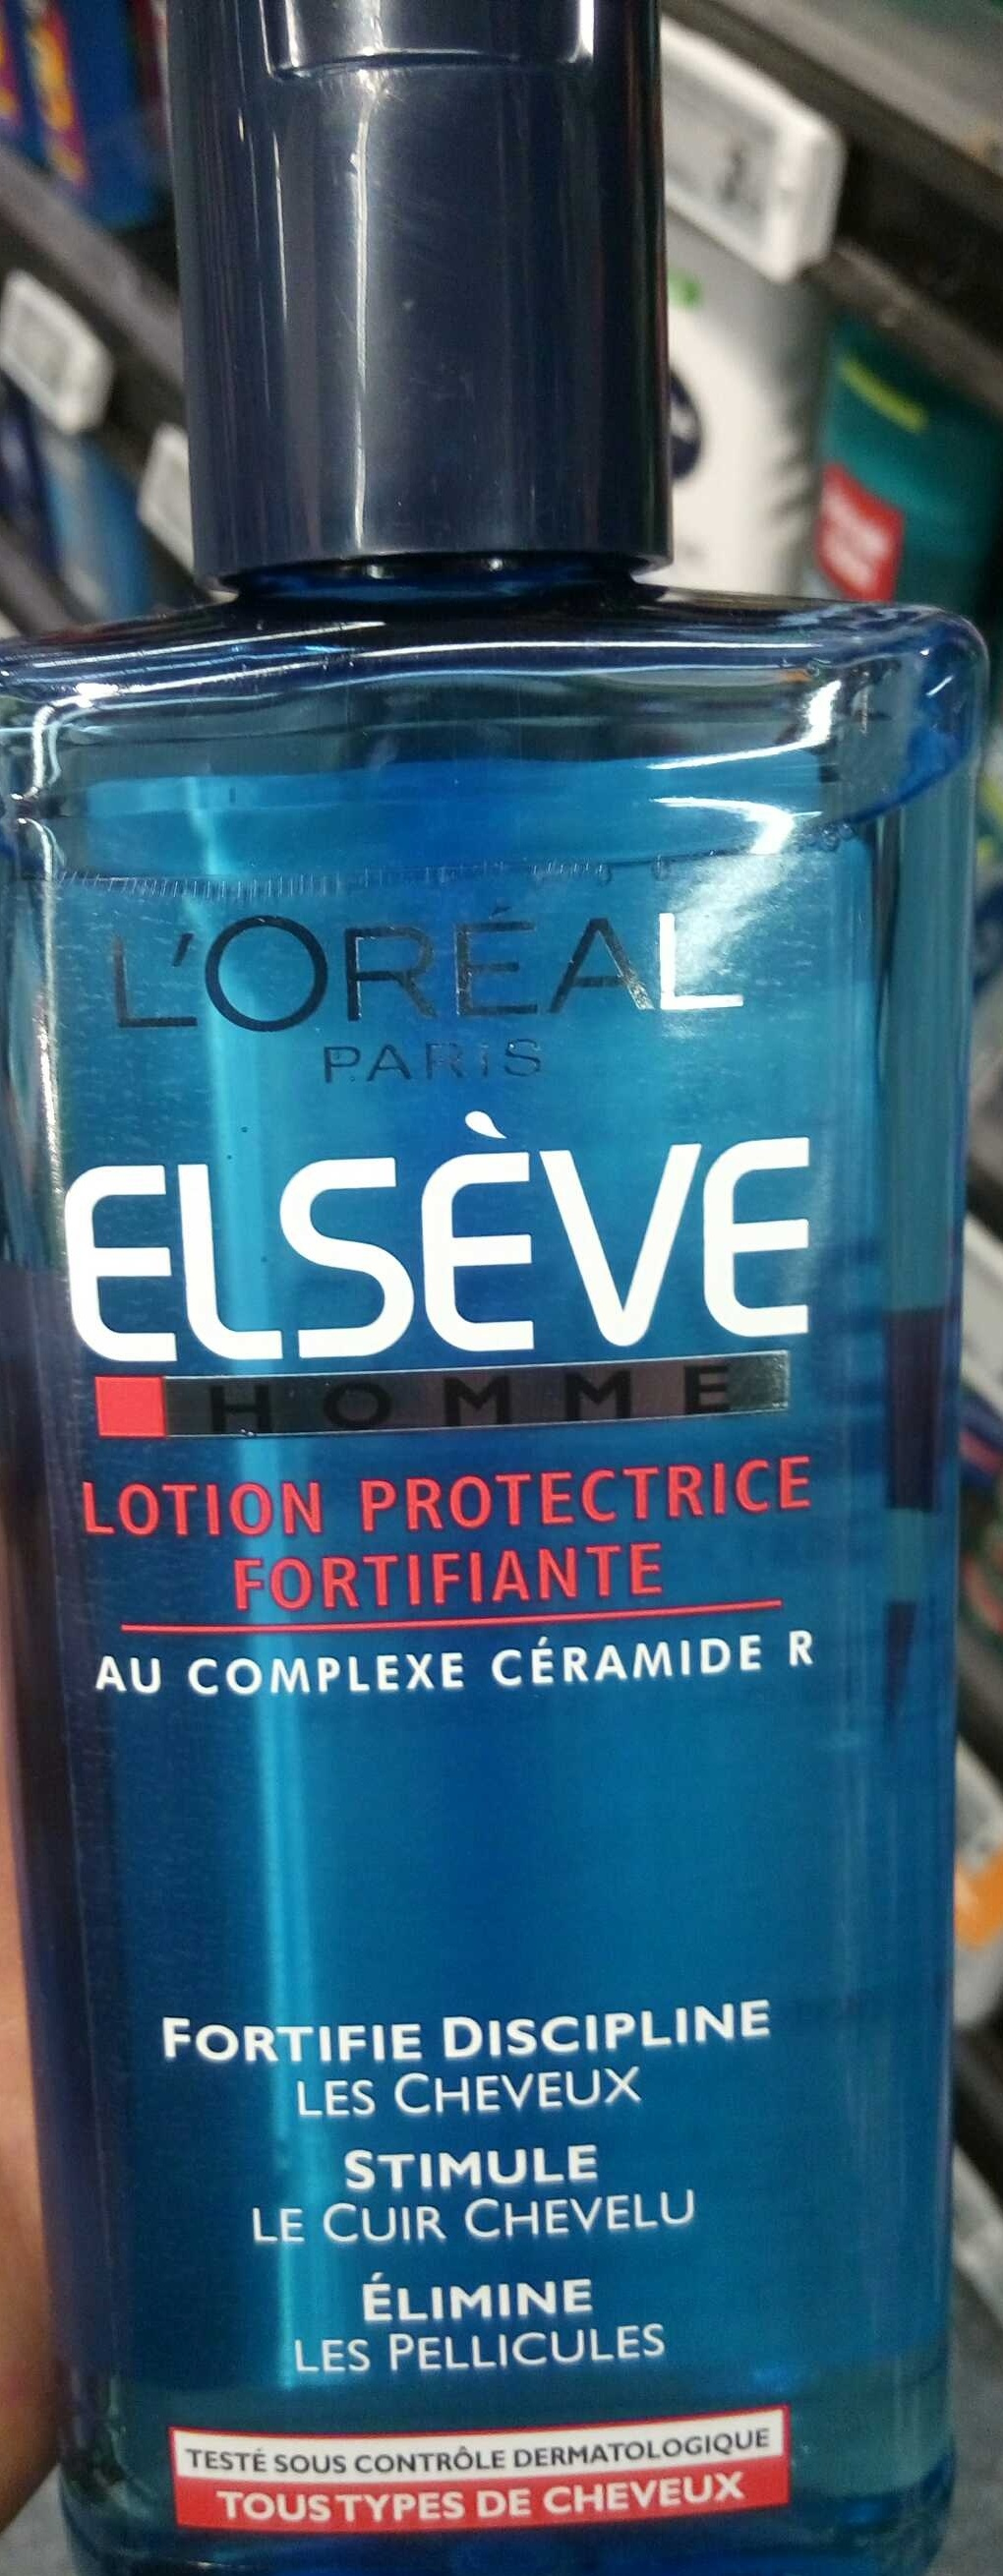 Elsève Homme Lotion Protectrice Fortifiante - Product